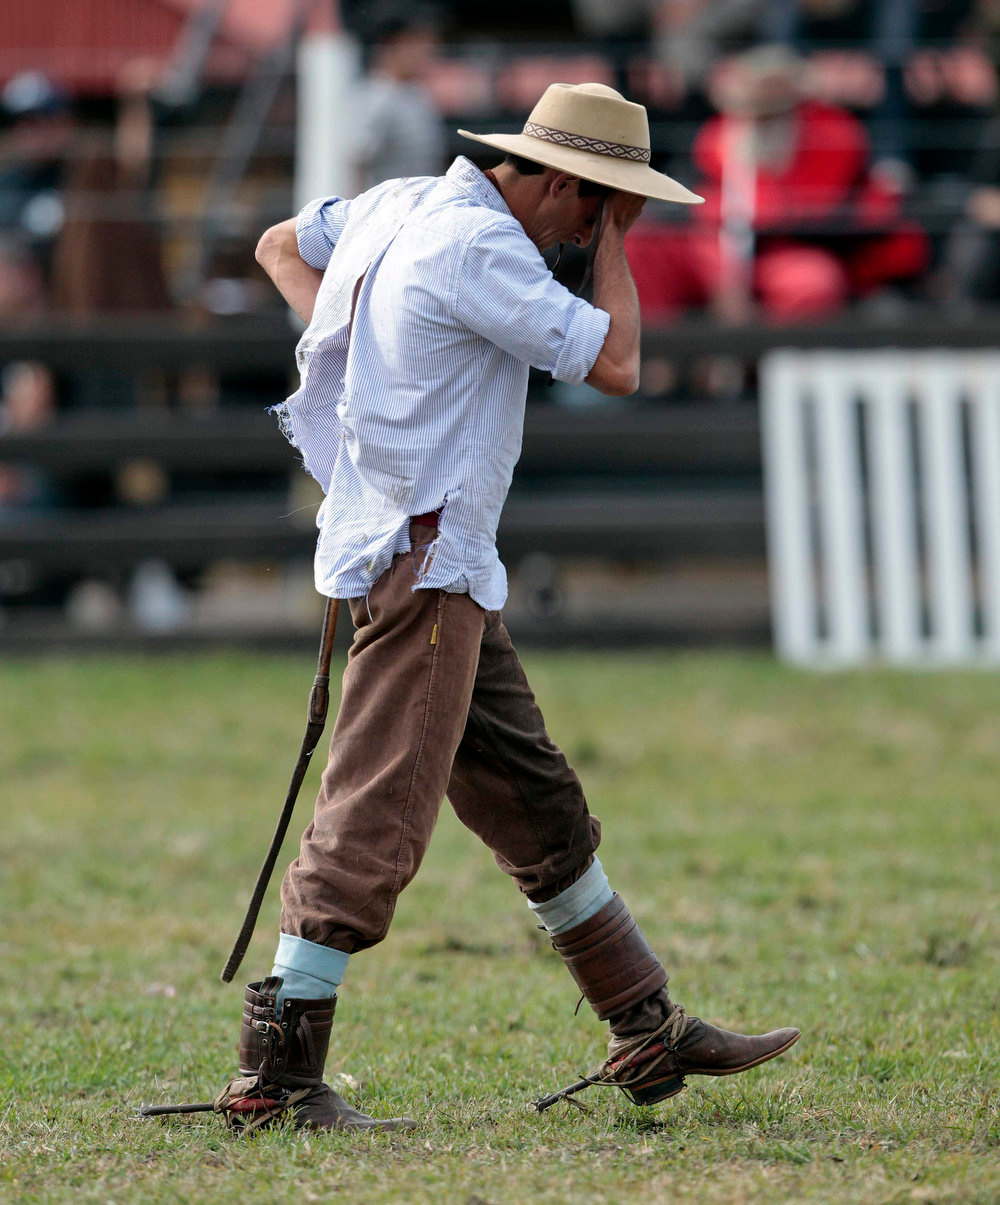 """. A gaucho reacts in pain after being unseated by an unbroken horse during the annual celebration of Criolla Week in Montevideo, March 25, 2013. Throughout Easter Week \""""gauchos\"""", the Latin American equivalent of the North American \""""cowboy\"""", from all Uruguay and neighboring Argentina and Brazil visit Montevideo to participate in Criolla Week to win the award of best rider. The competition is held March 24 - March 30. REUTERS/Andres Stapff"""